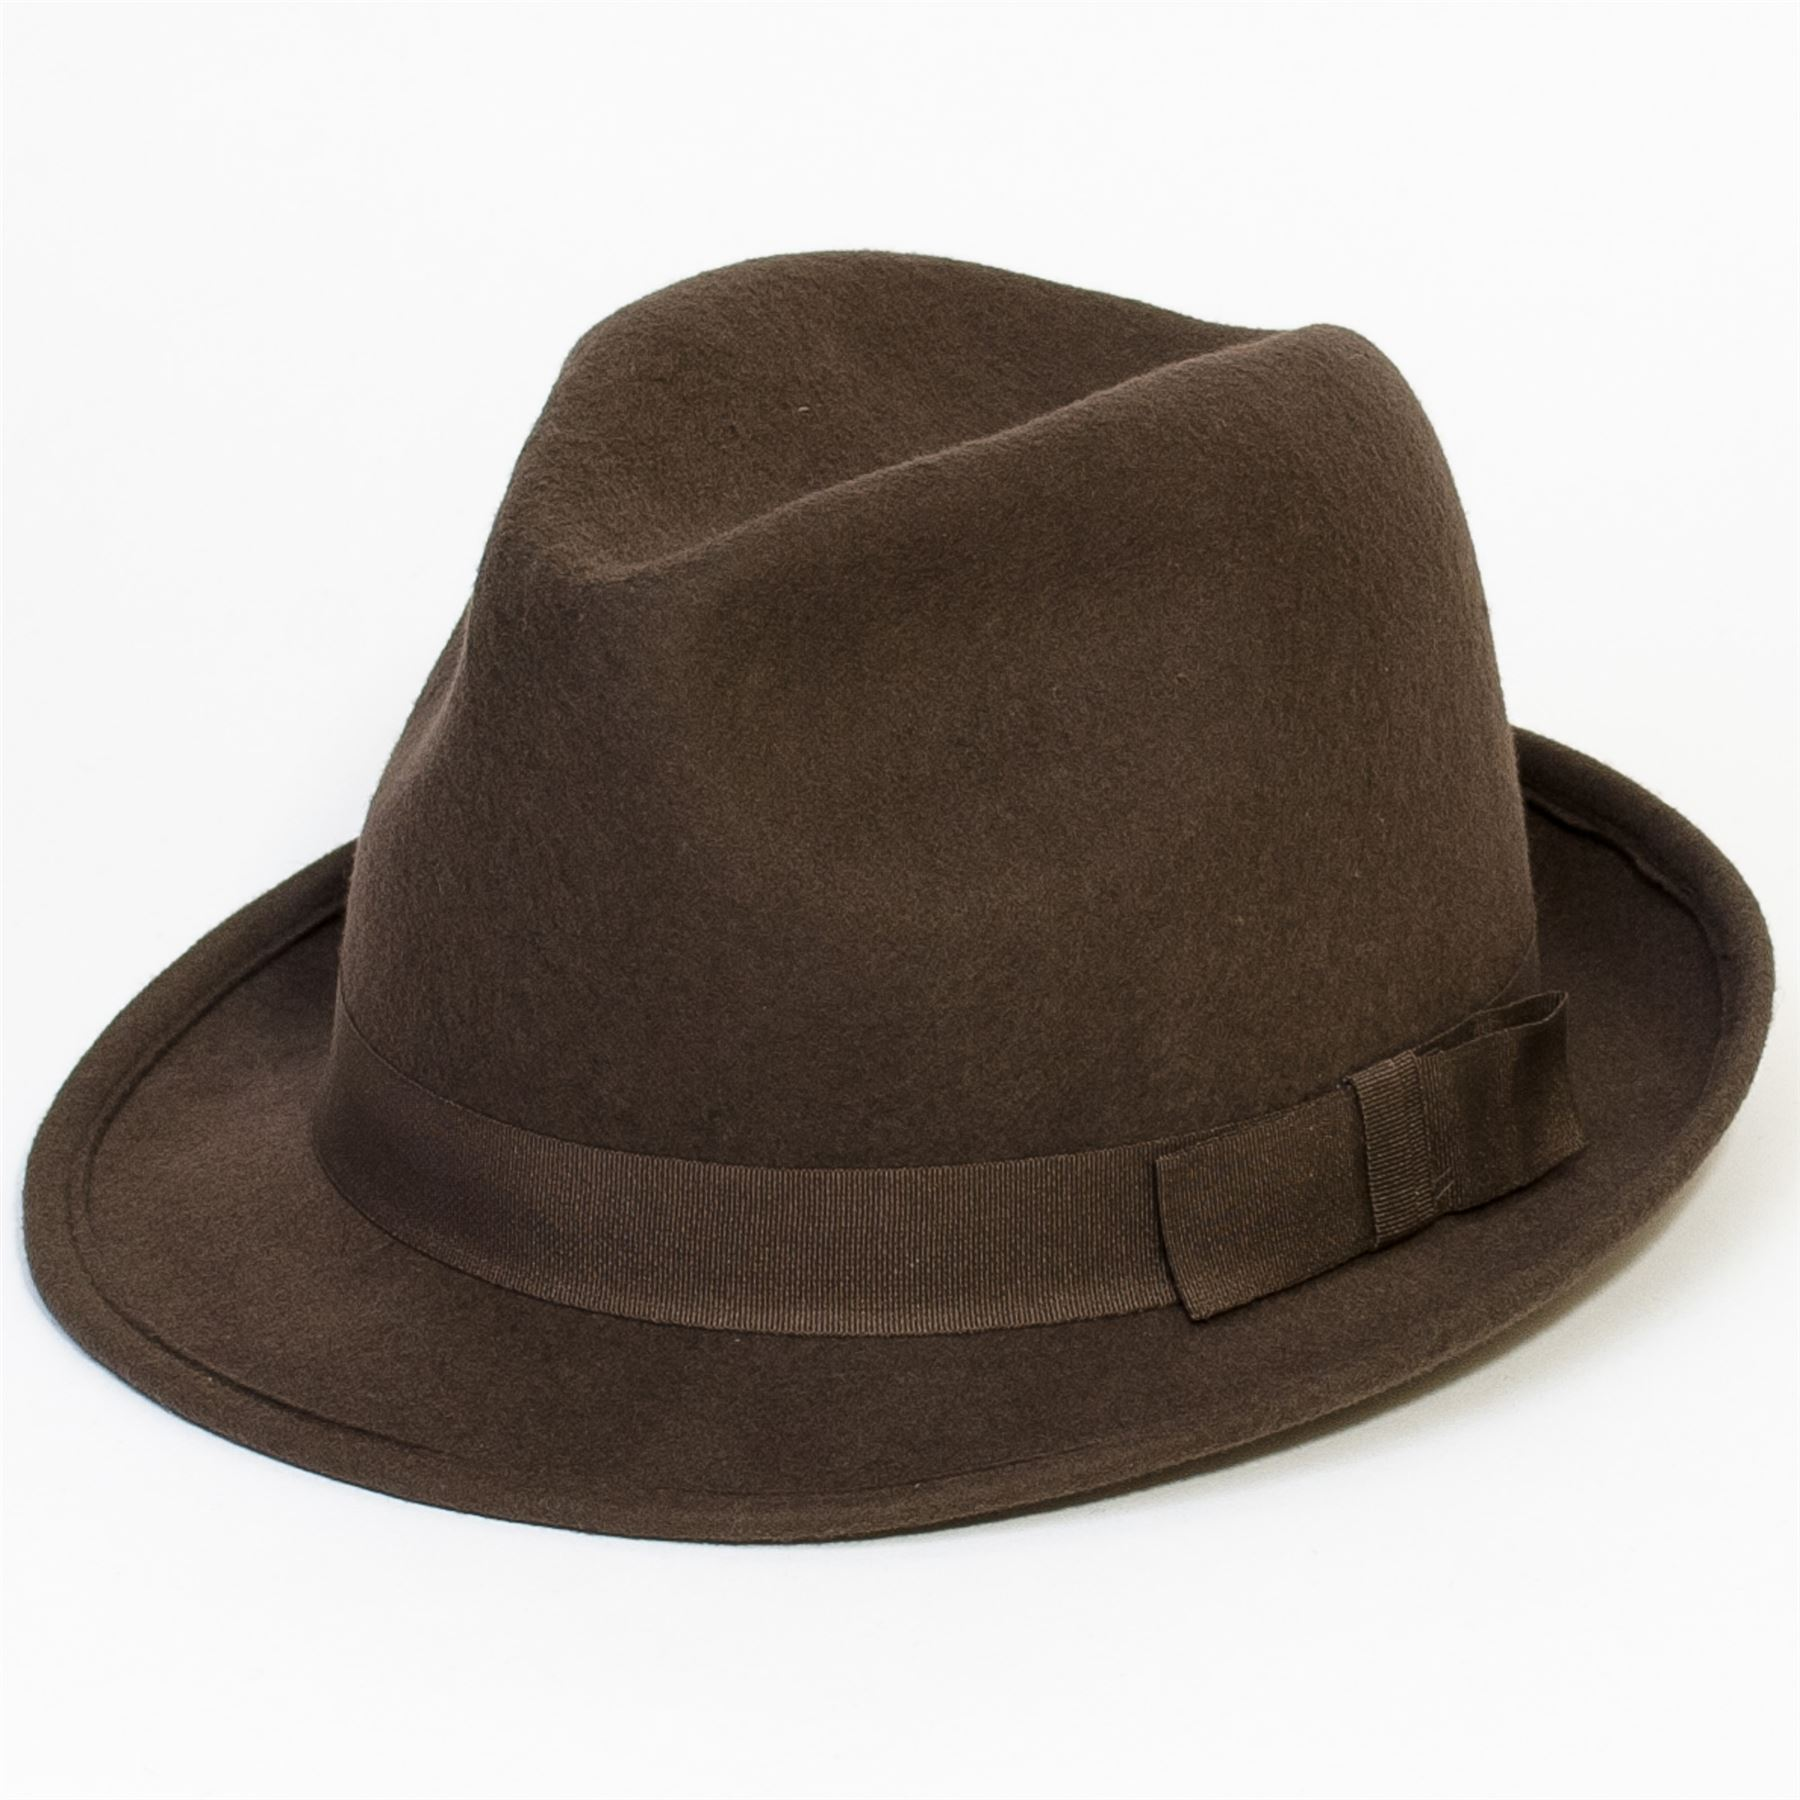 Mens hats are a passion at Village Hat Shop. We have trekked the globe in search of In House Hat Experts · Low Price Guarantee · Over 5, hats · In House Hat Experts1,+ followers on Twitter.